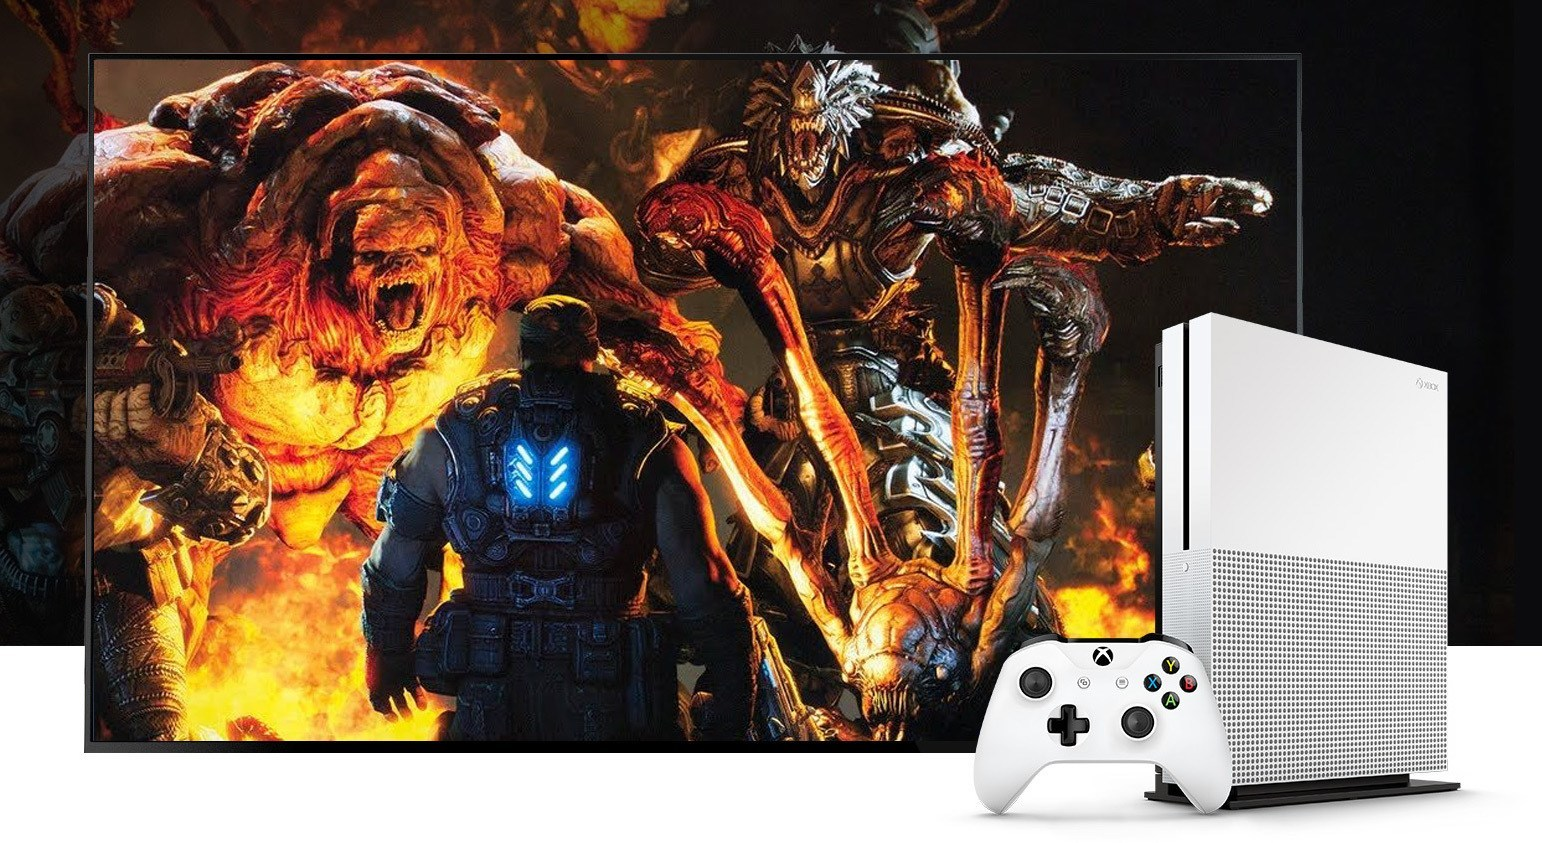 An Xbox One S, with Xbox One exclusive game Gears of War 4